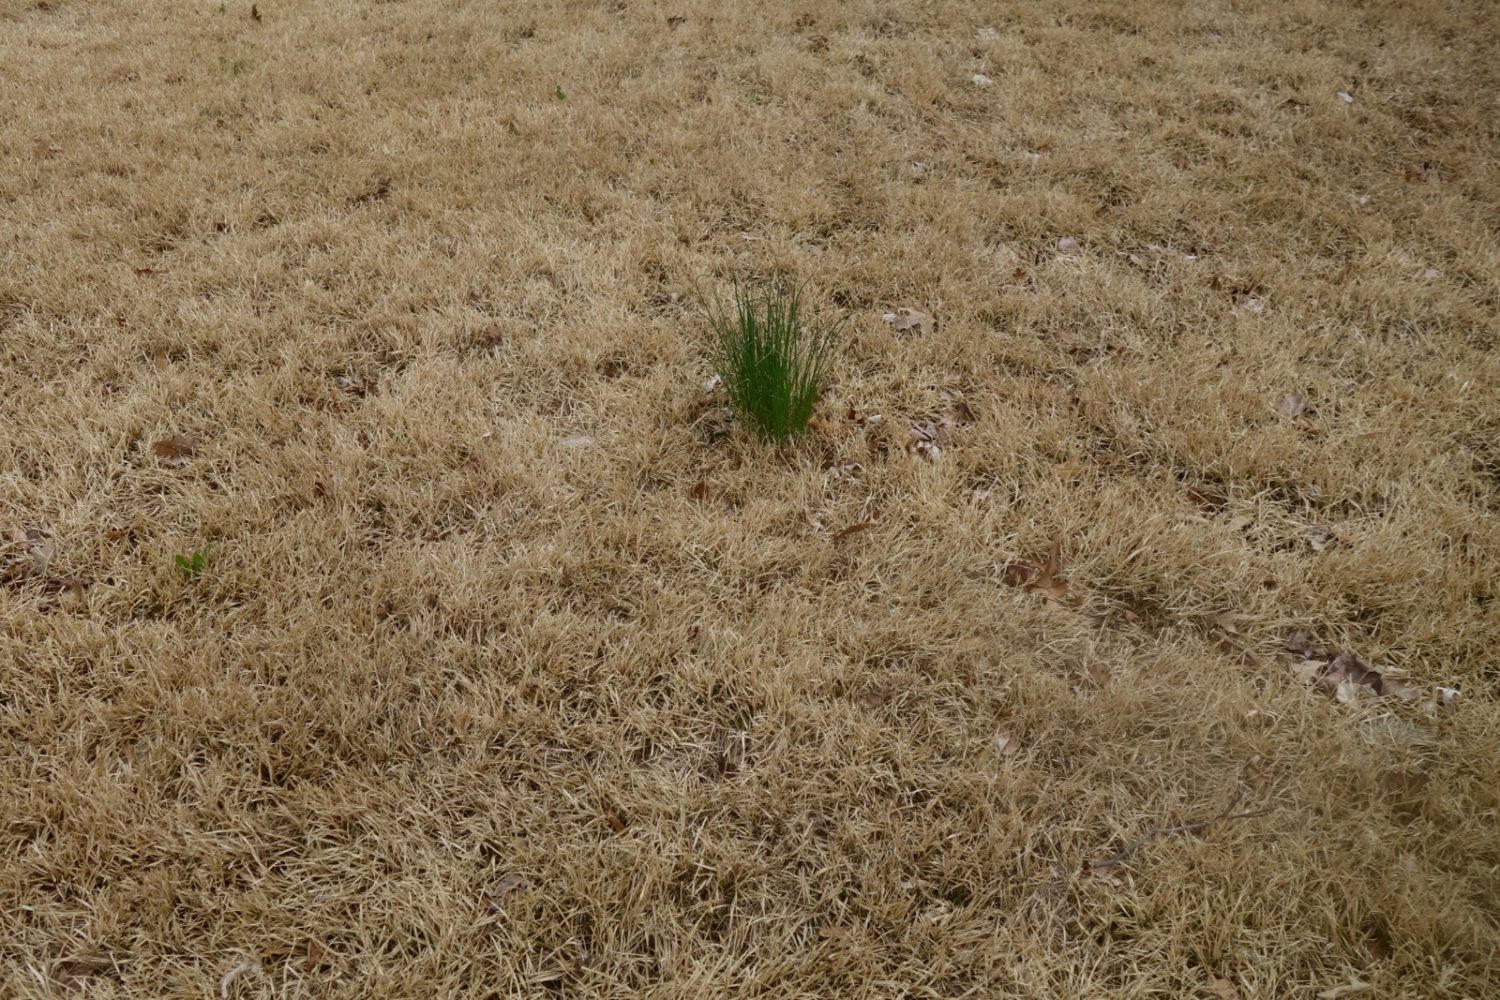 Green growth in brown lawn on Wisner